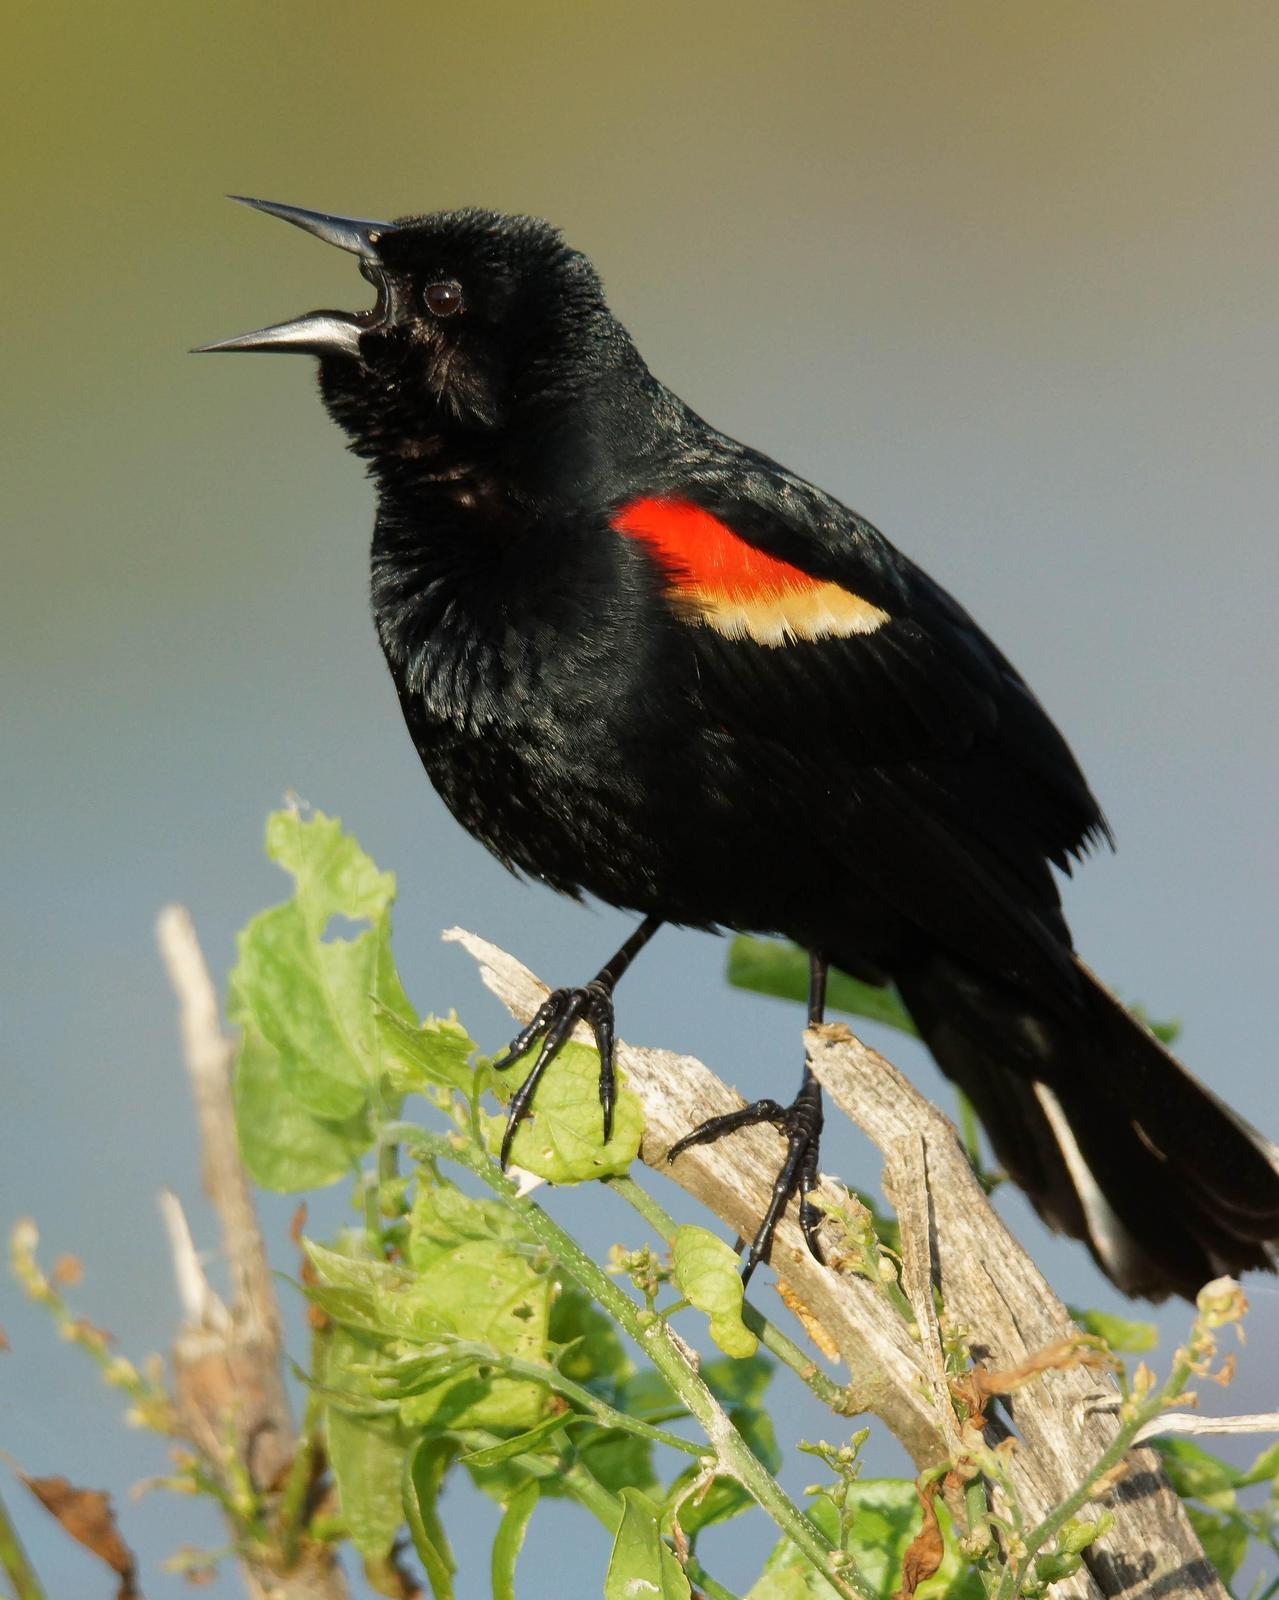 Red-winged Blackbird Photo by Steve Percival